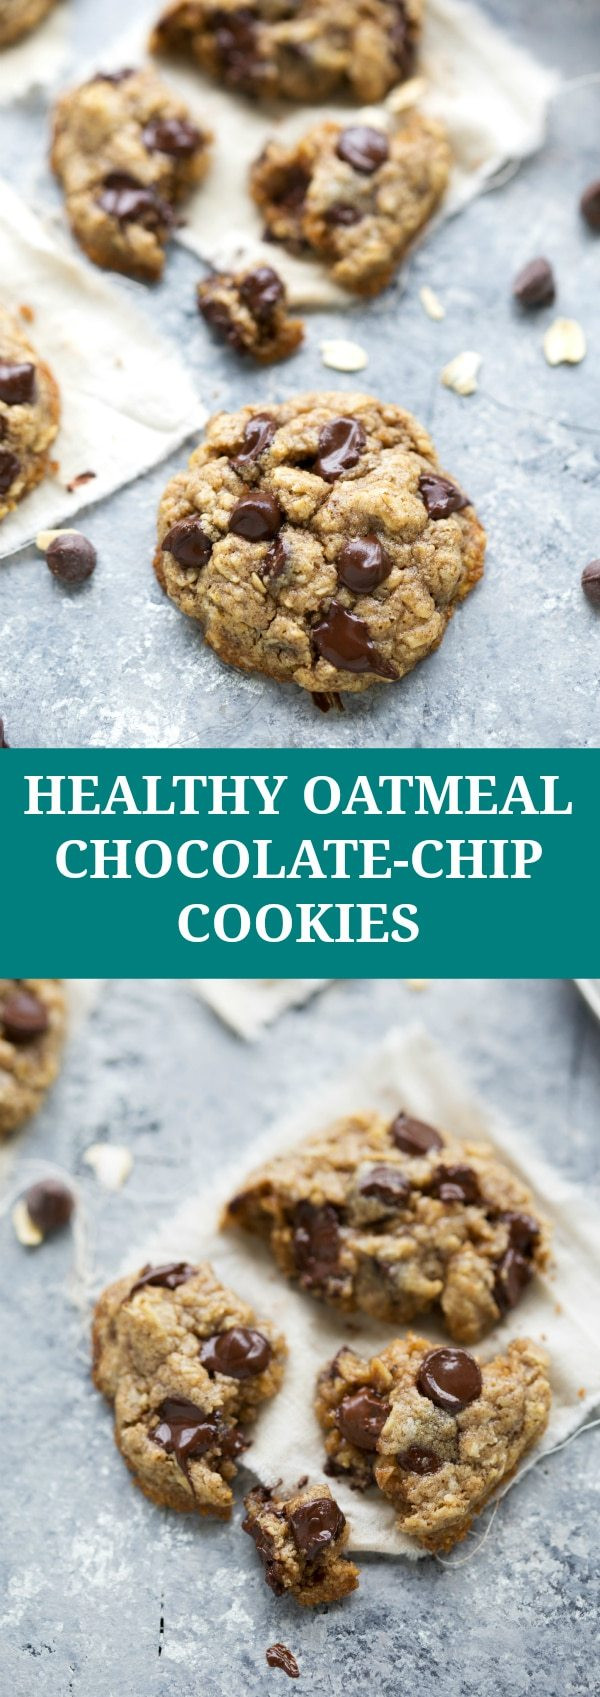 Healthy Oatmeal Chocolate Chip Cookies the top 20 Ideas About the Best Healthy Oatmeal Chocolate Chip Cookies Chelsea